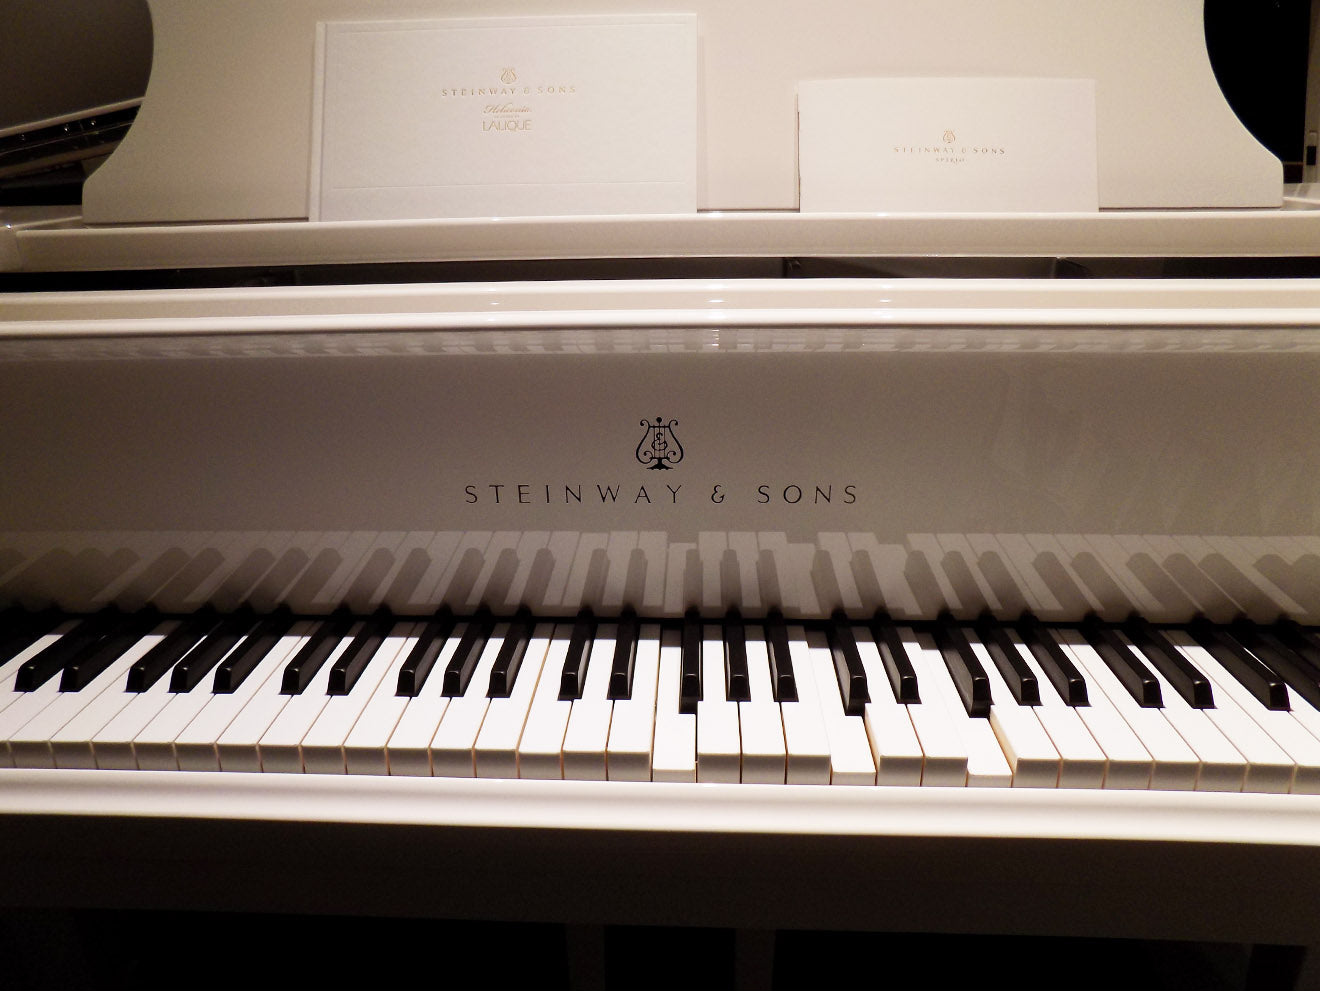 Steinway & Sons luxury piano self playing at Masterpiece